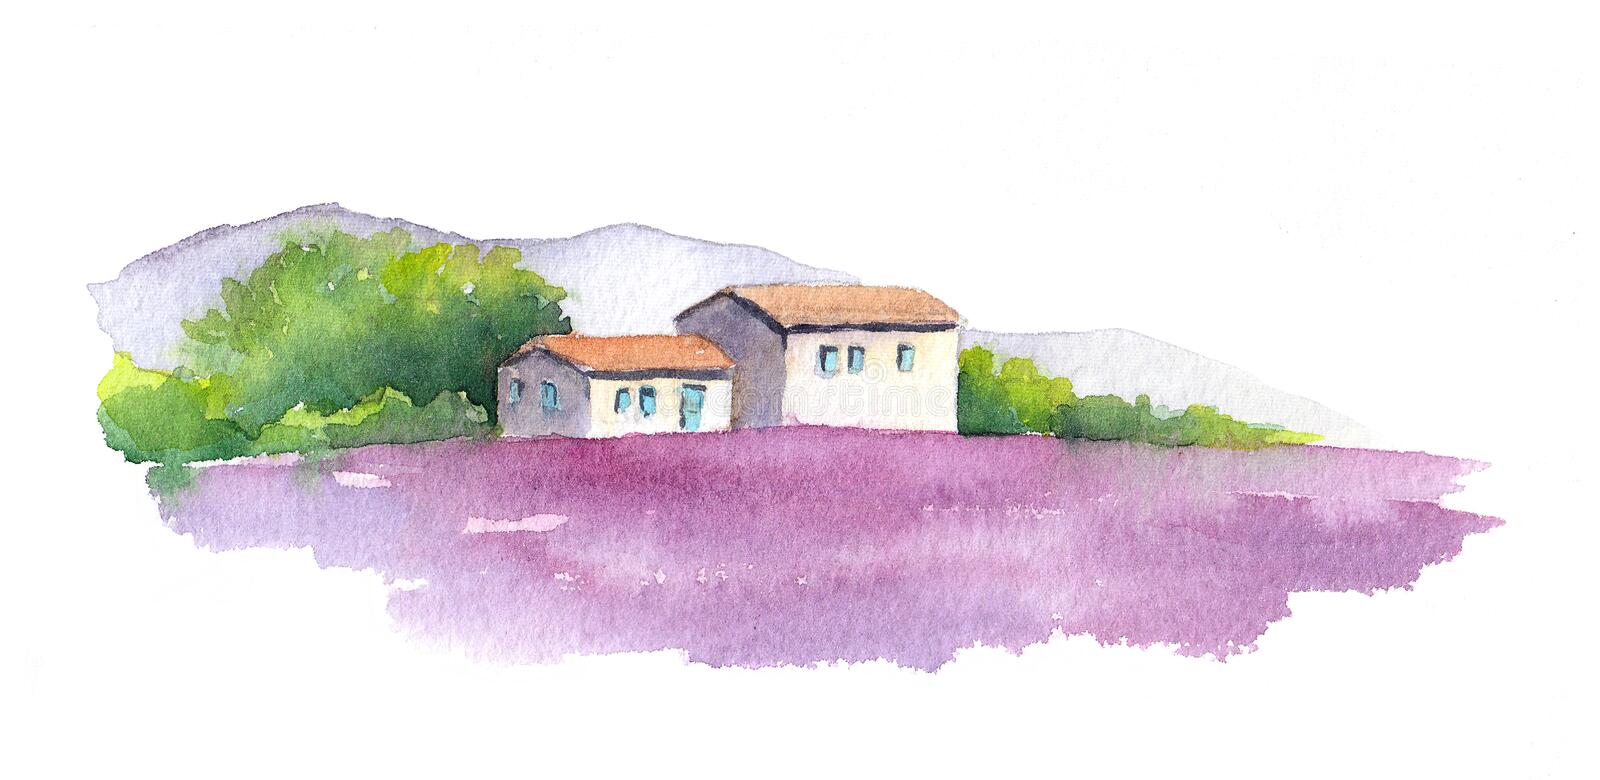 Gisement de lavande et maison rurale en Provence, France watercolor illustration libre de droits